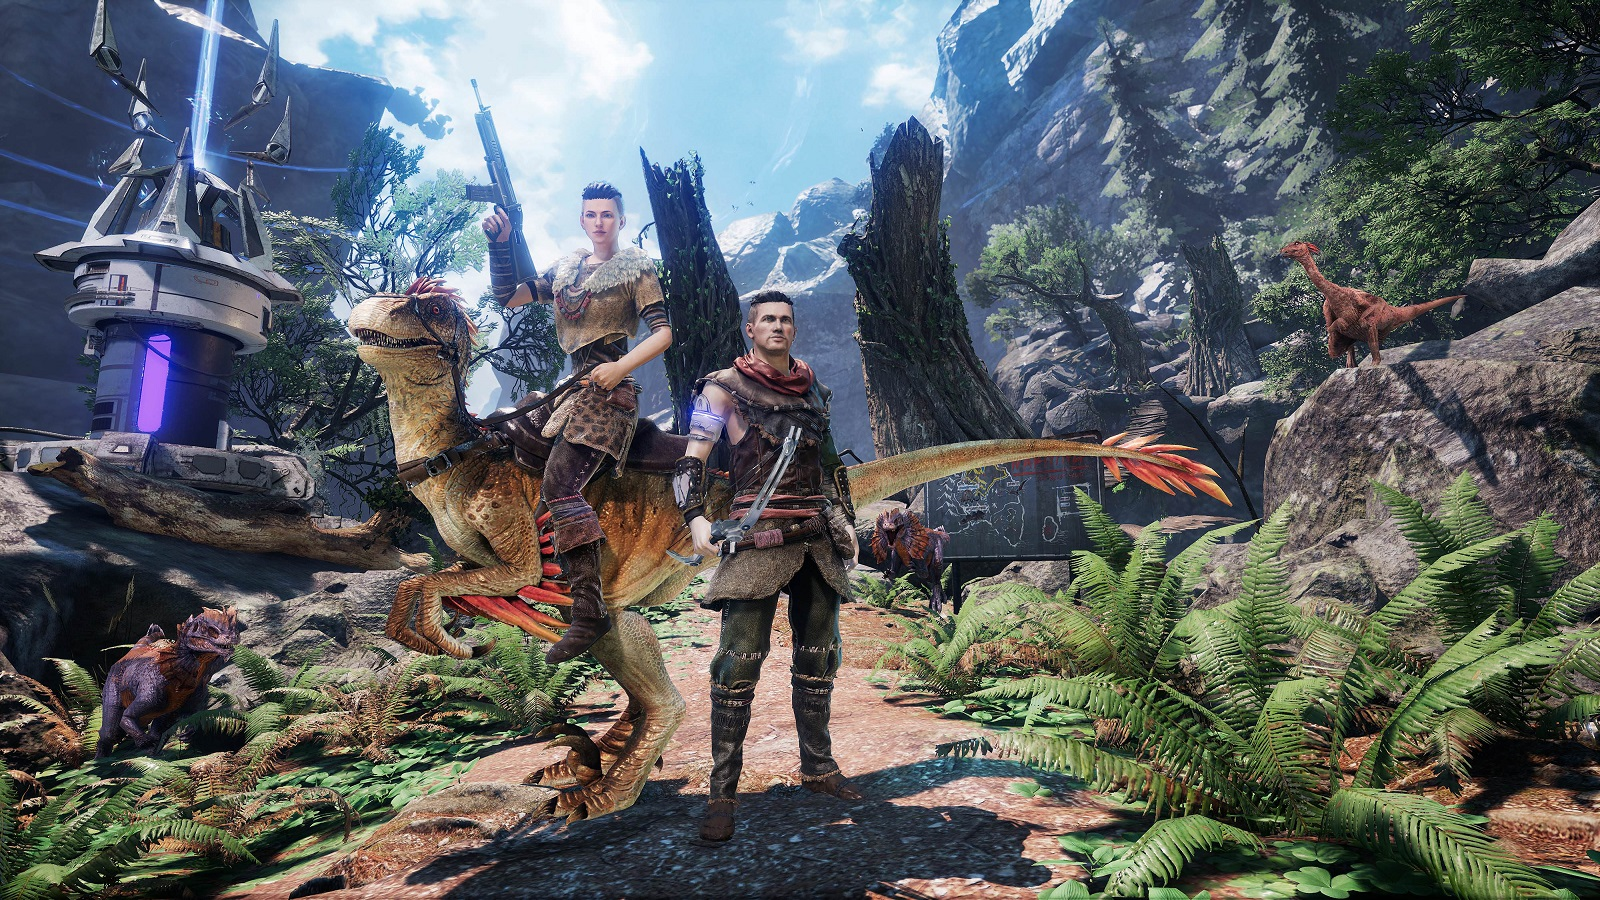 The Steam And PSVR Releases Of ARK Park Will Also Come With A More  Expensive Deluxe Edition, Which Includes Some More Outfits And Goodies.